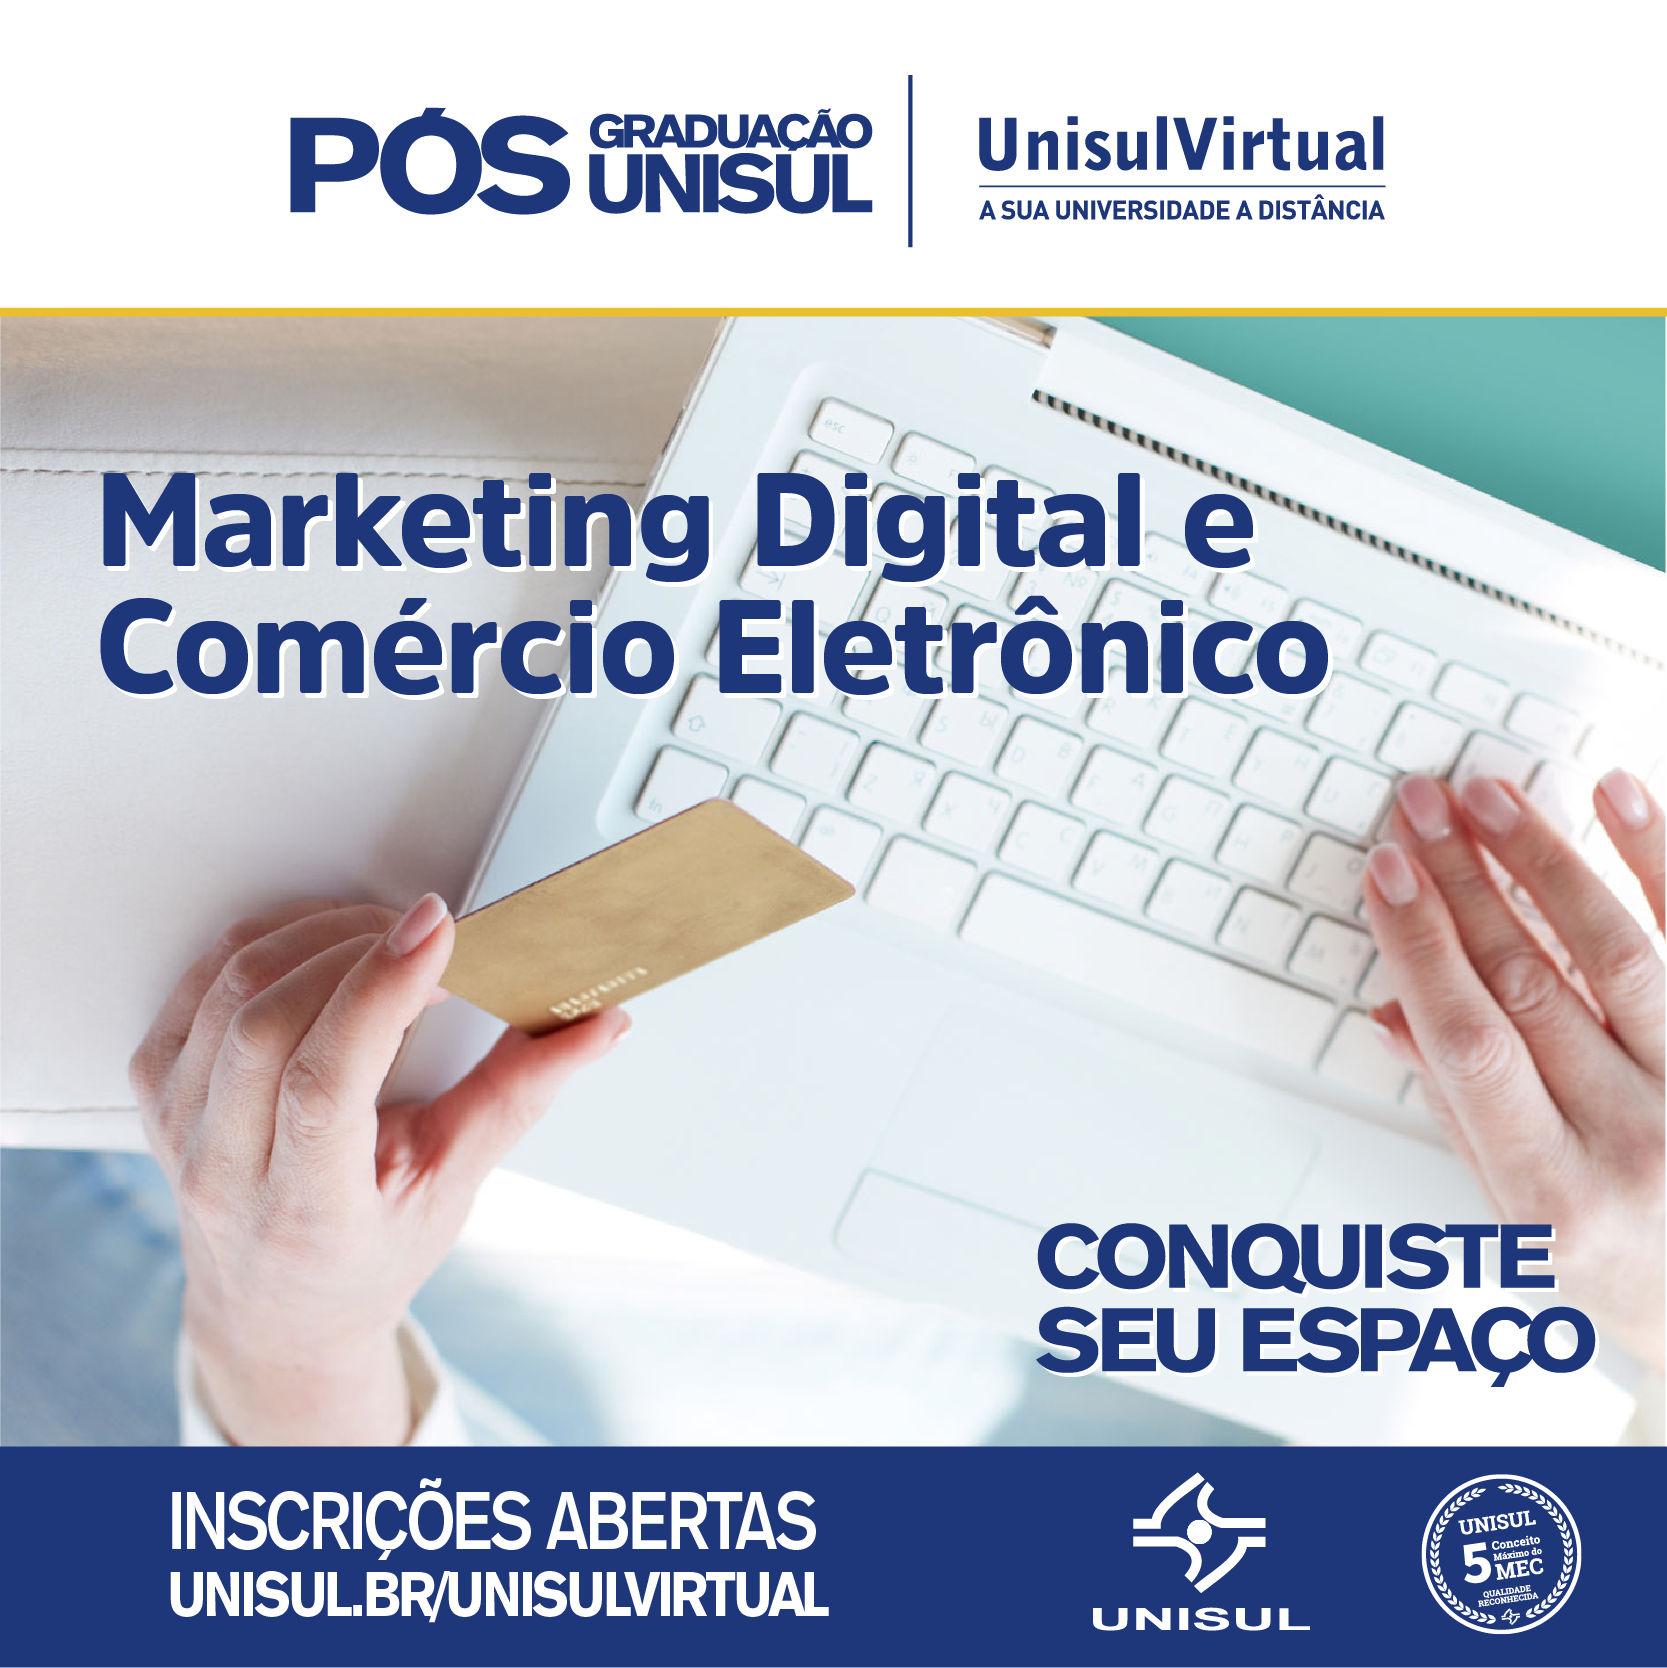 pos-graduacao-ead-marketing-digital-com-eletronico